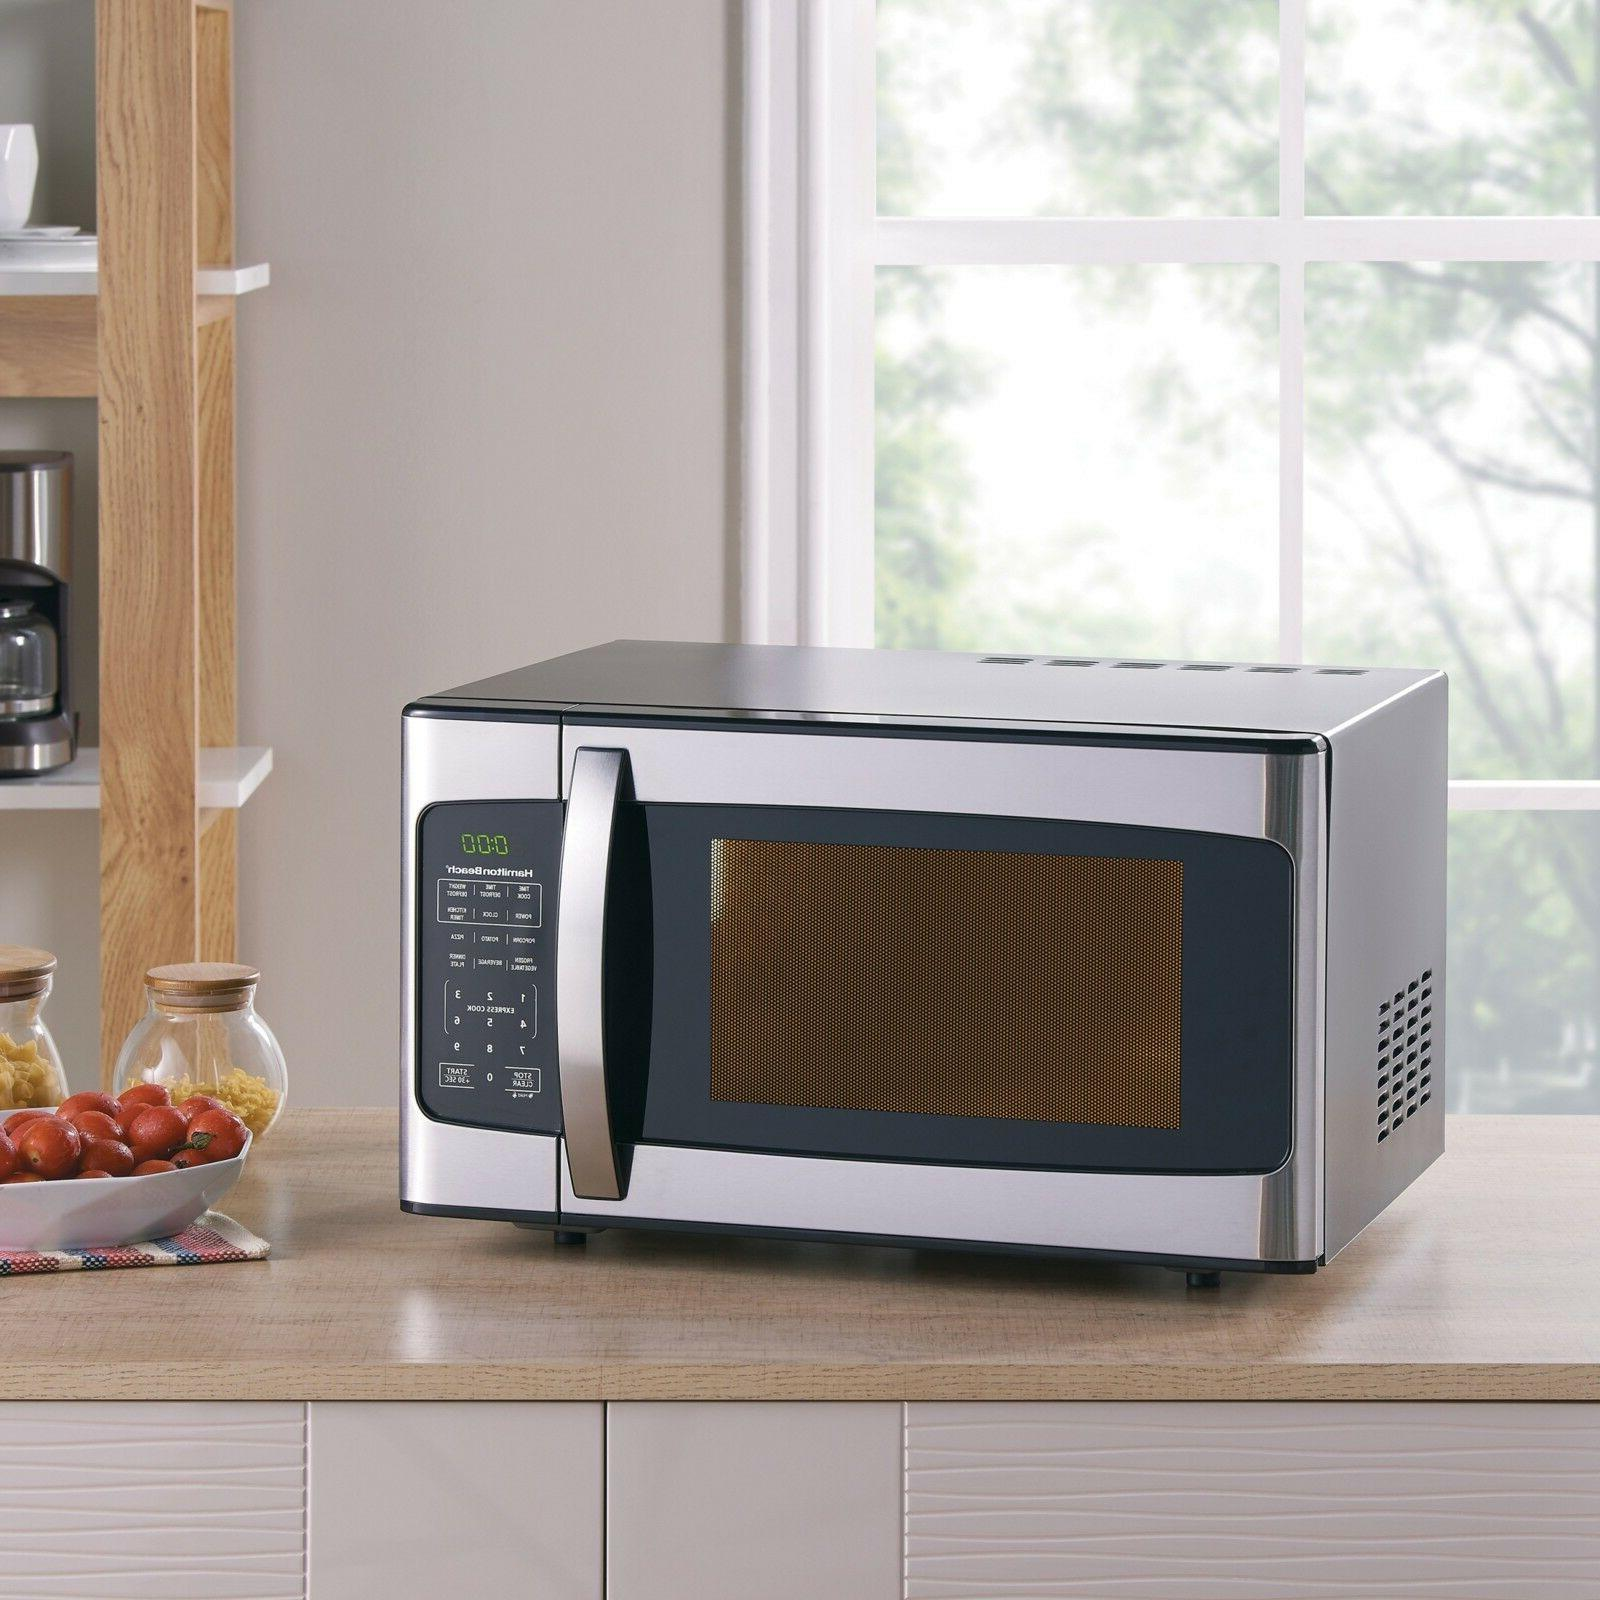 1.1 cu. ft. 1000 Watt Microwave, Stainless Steel Hamilton Be